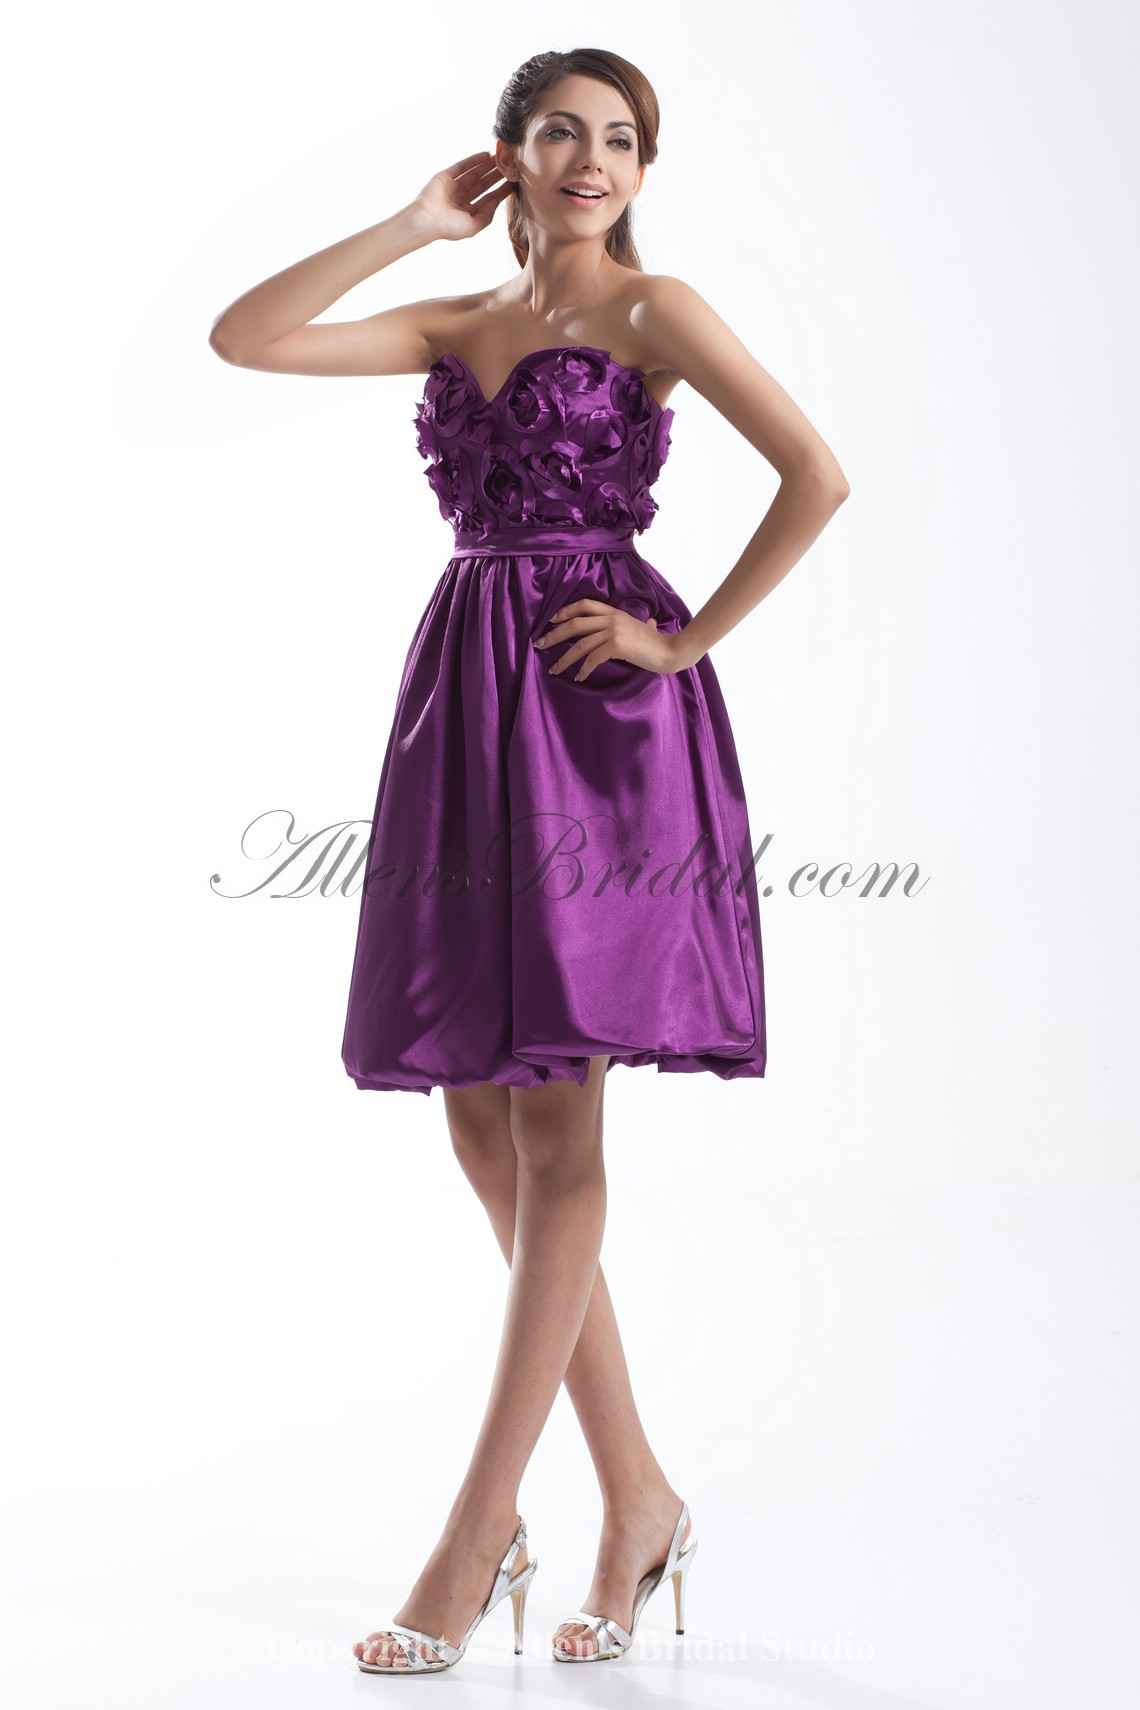 /633-5070/satin-sweetheart-knee-length-a-line-hand-made-flowers-cocktail-dress.jpg